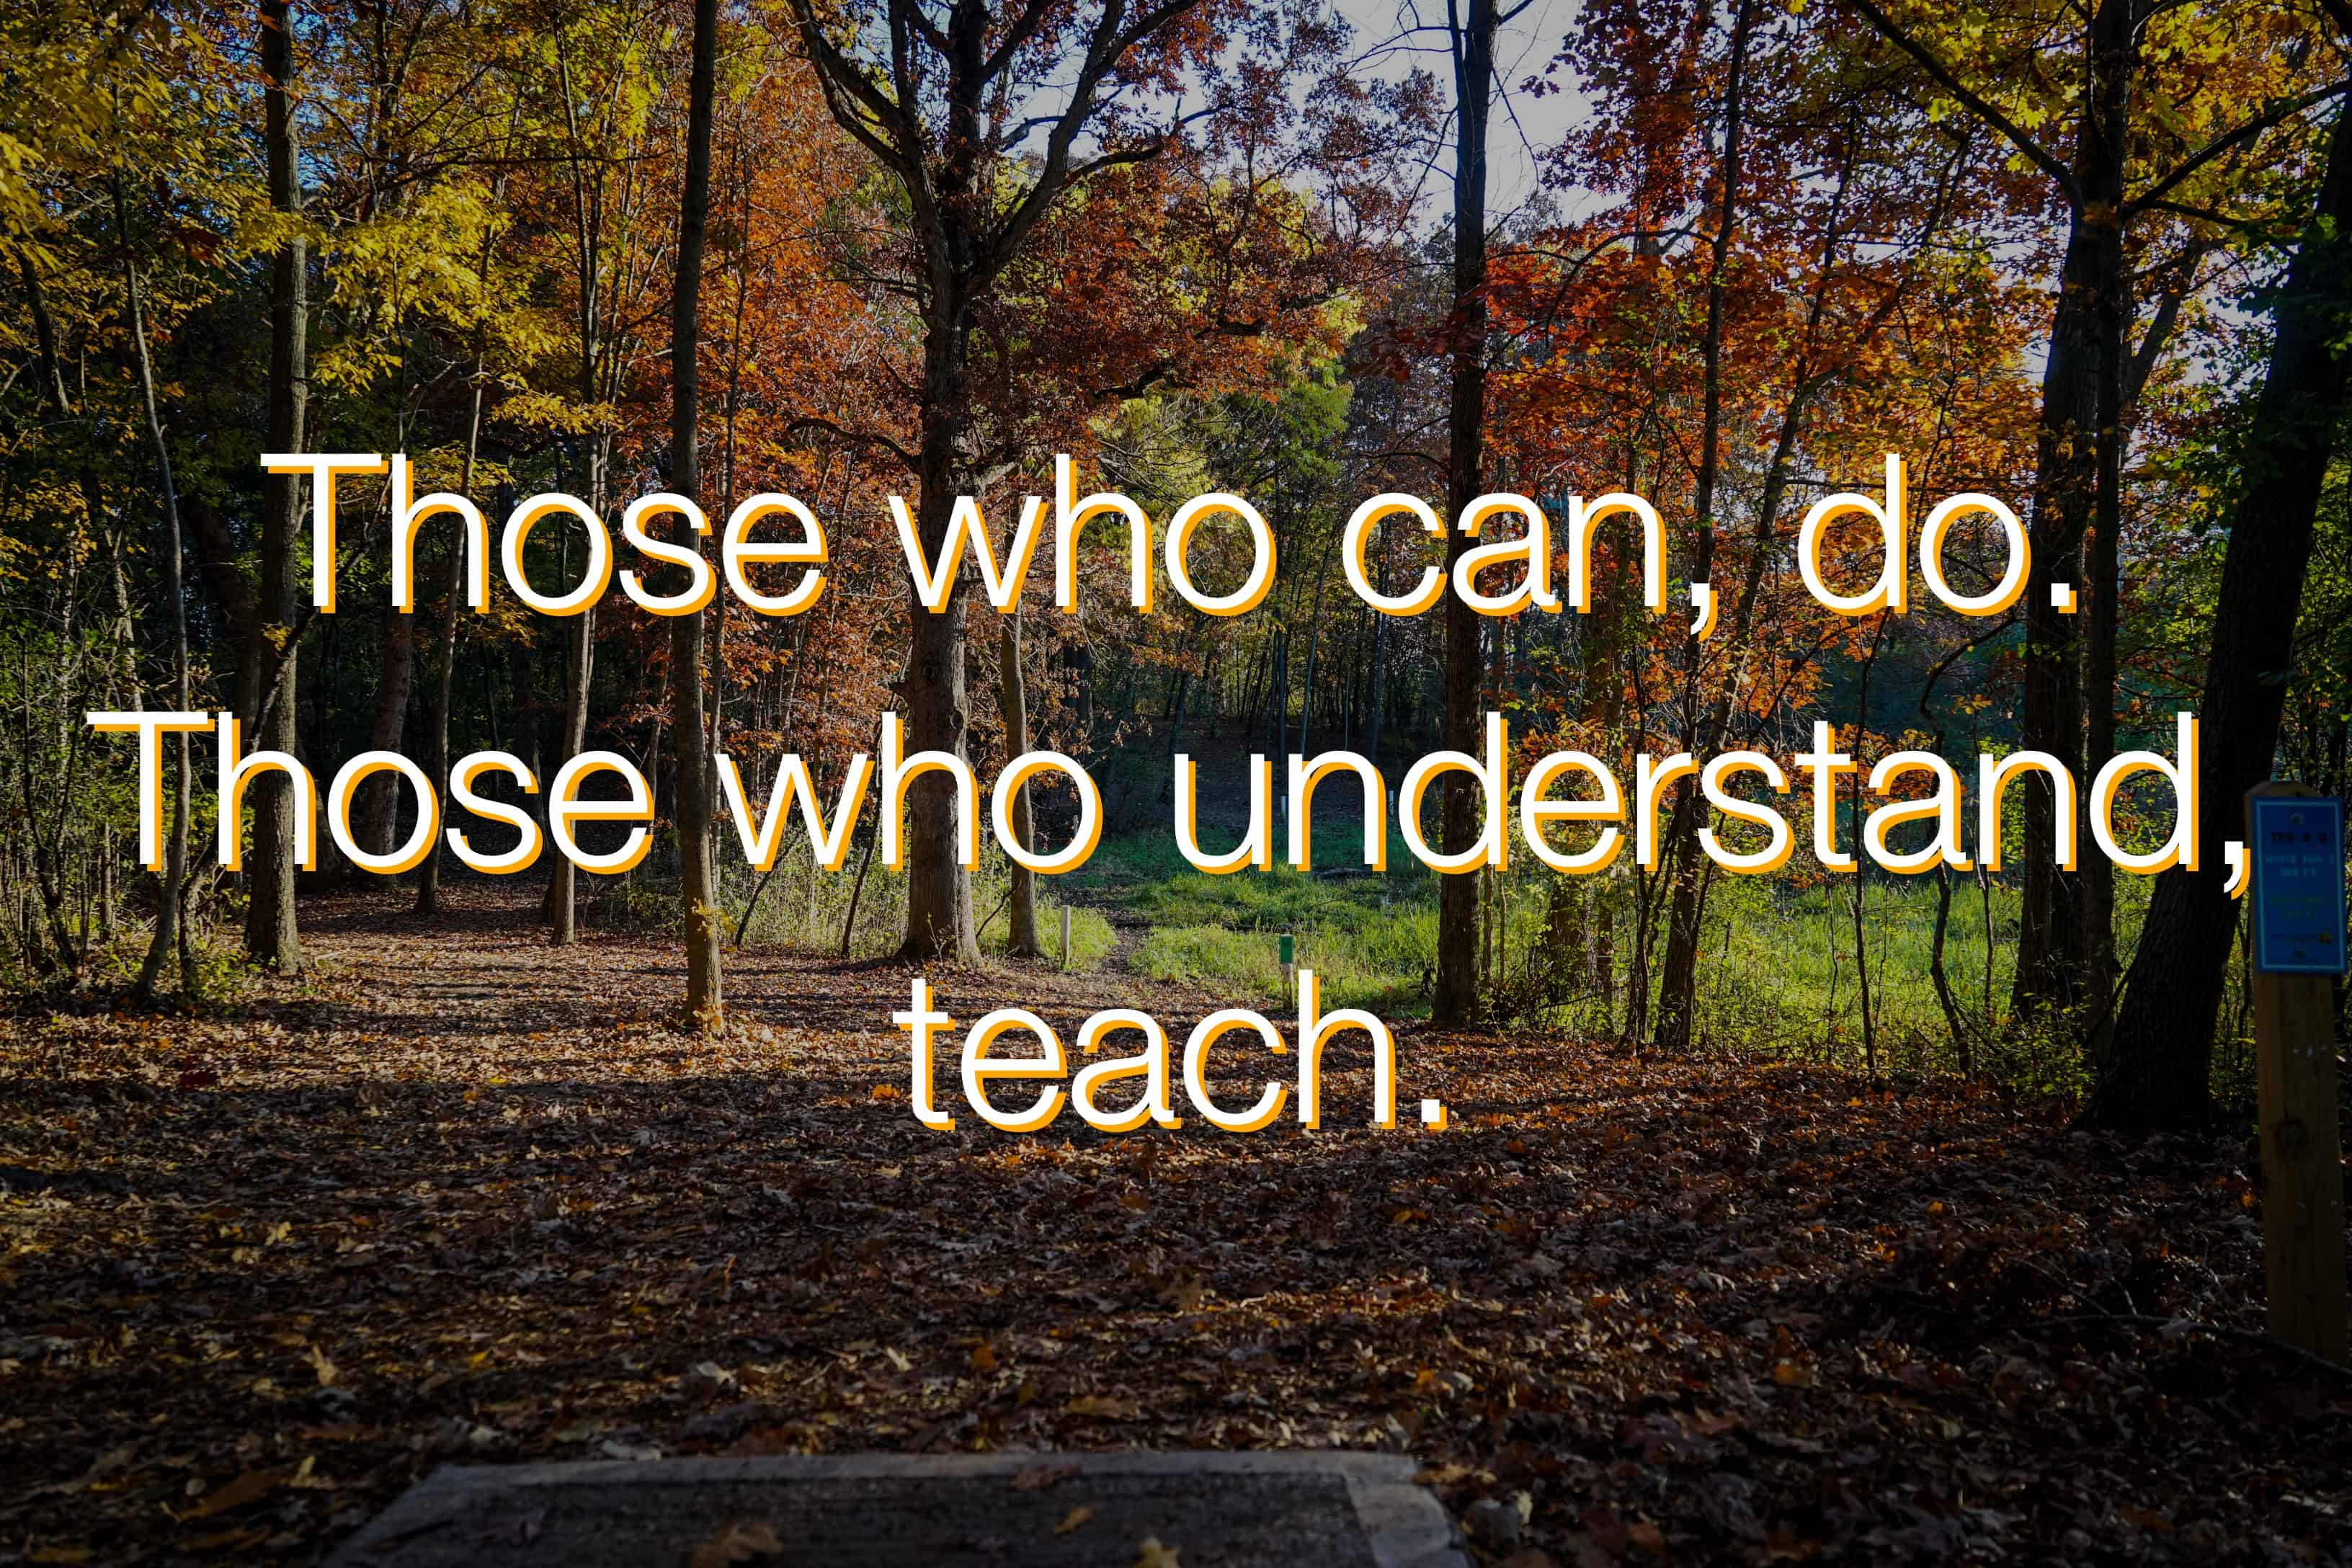 Those That Know Do Those That Understand Teach: Those Who Understand, Teach